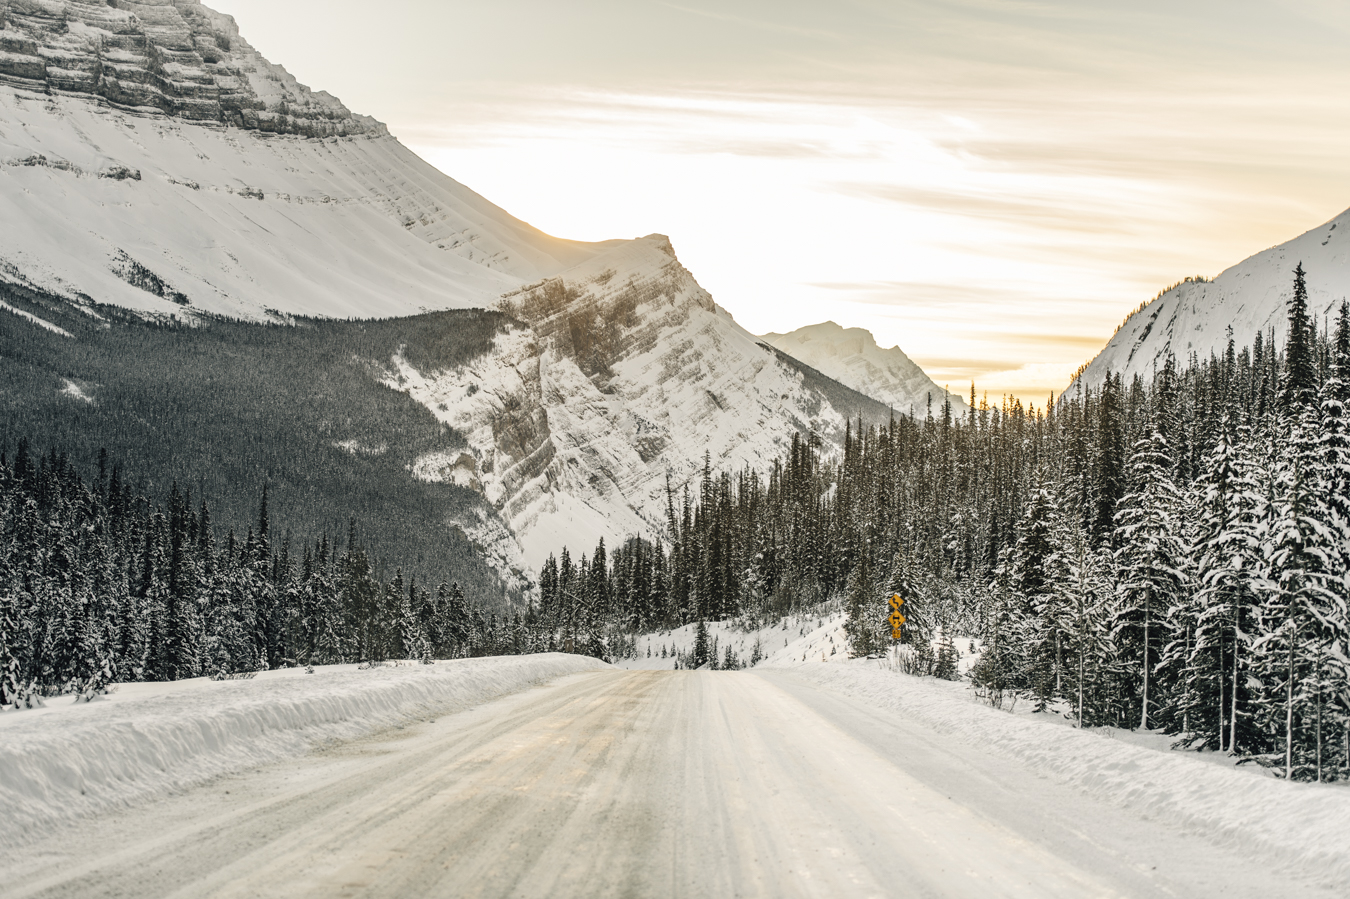 icefields-parkway-christian-frumolt-fotografie_web_small-123